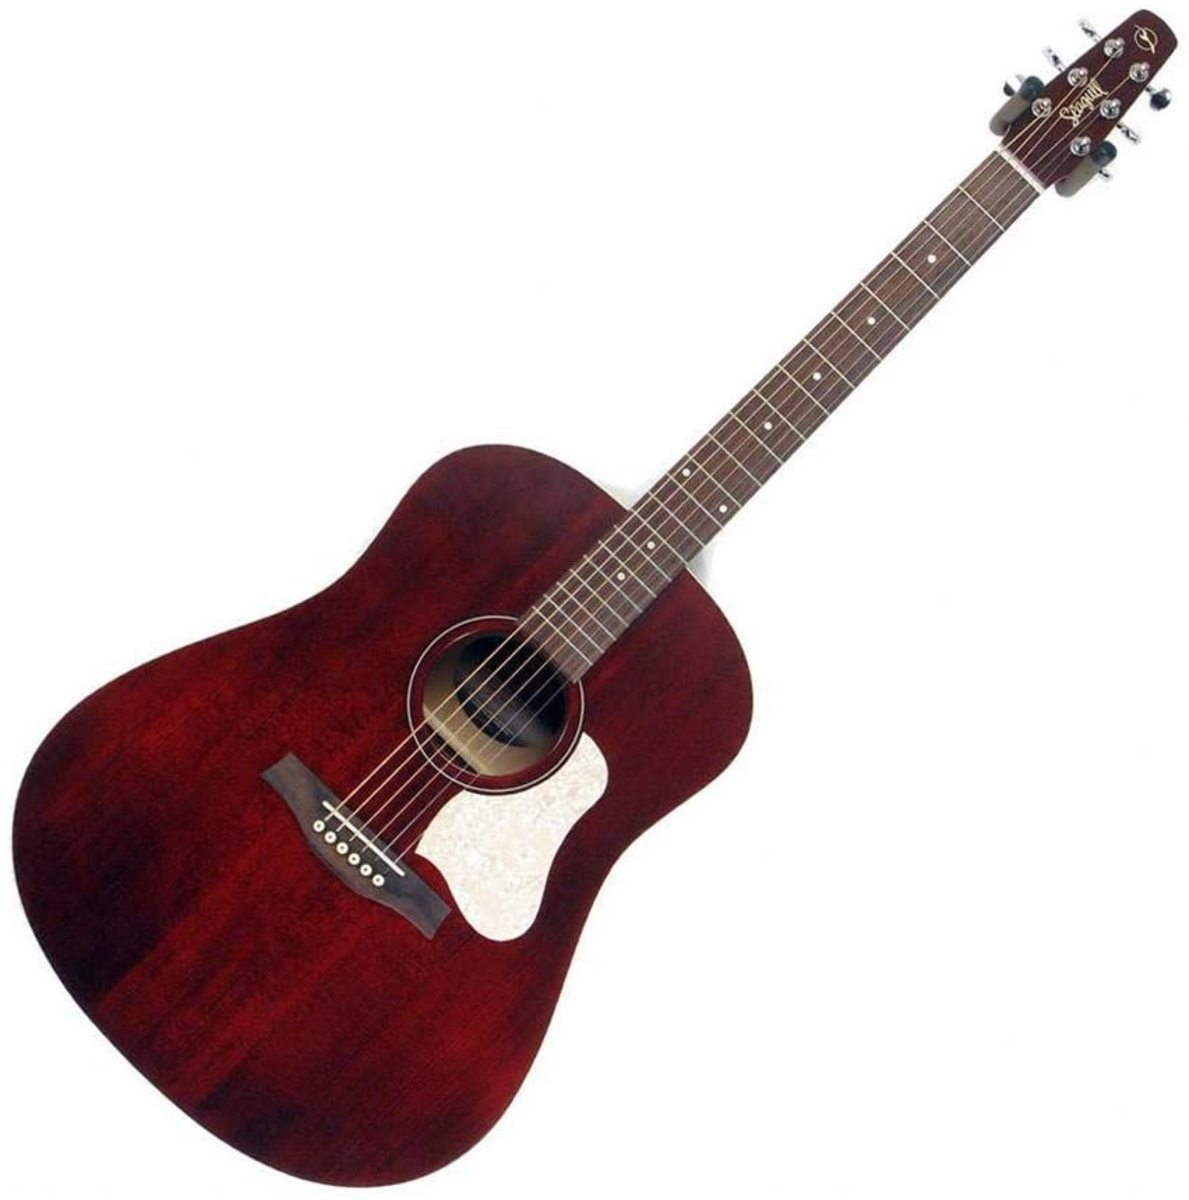 The Seagull S6 Original Acoustic Guitar.